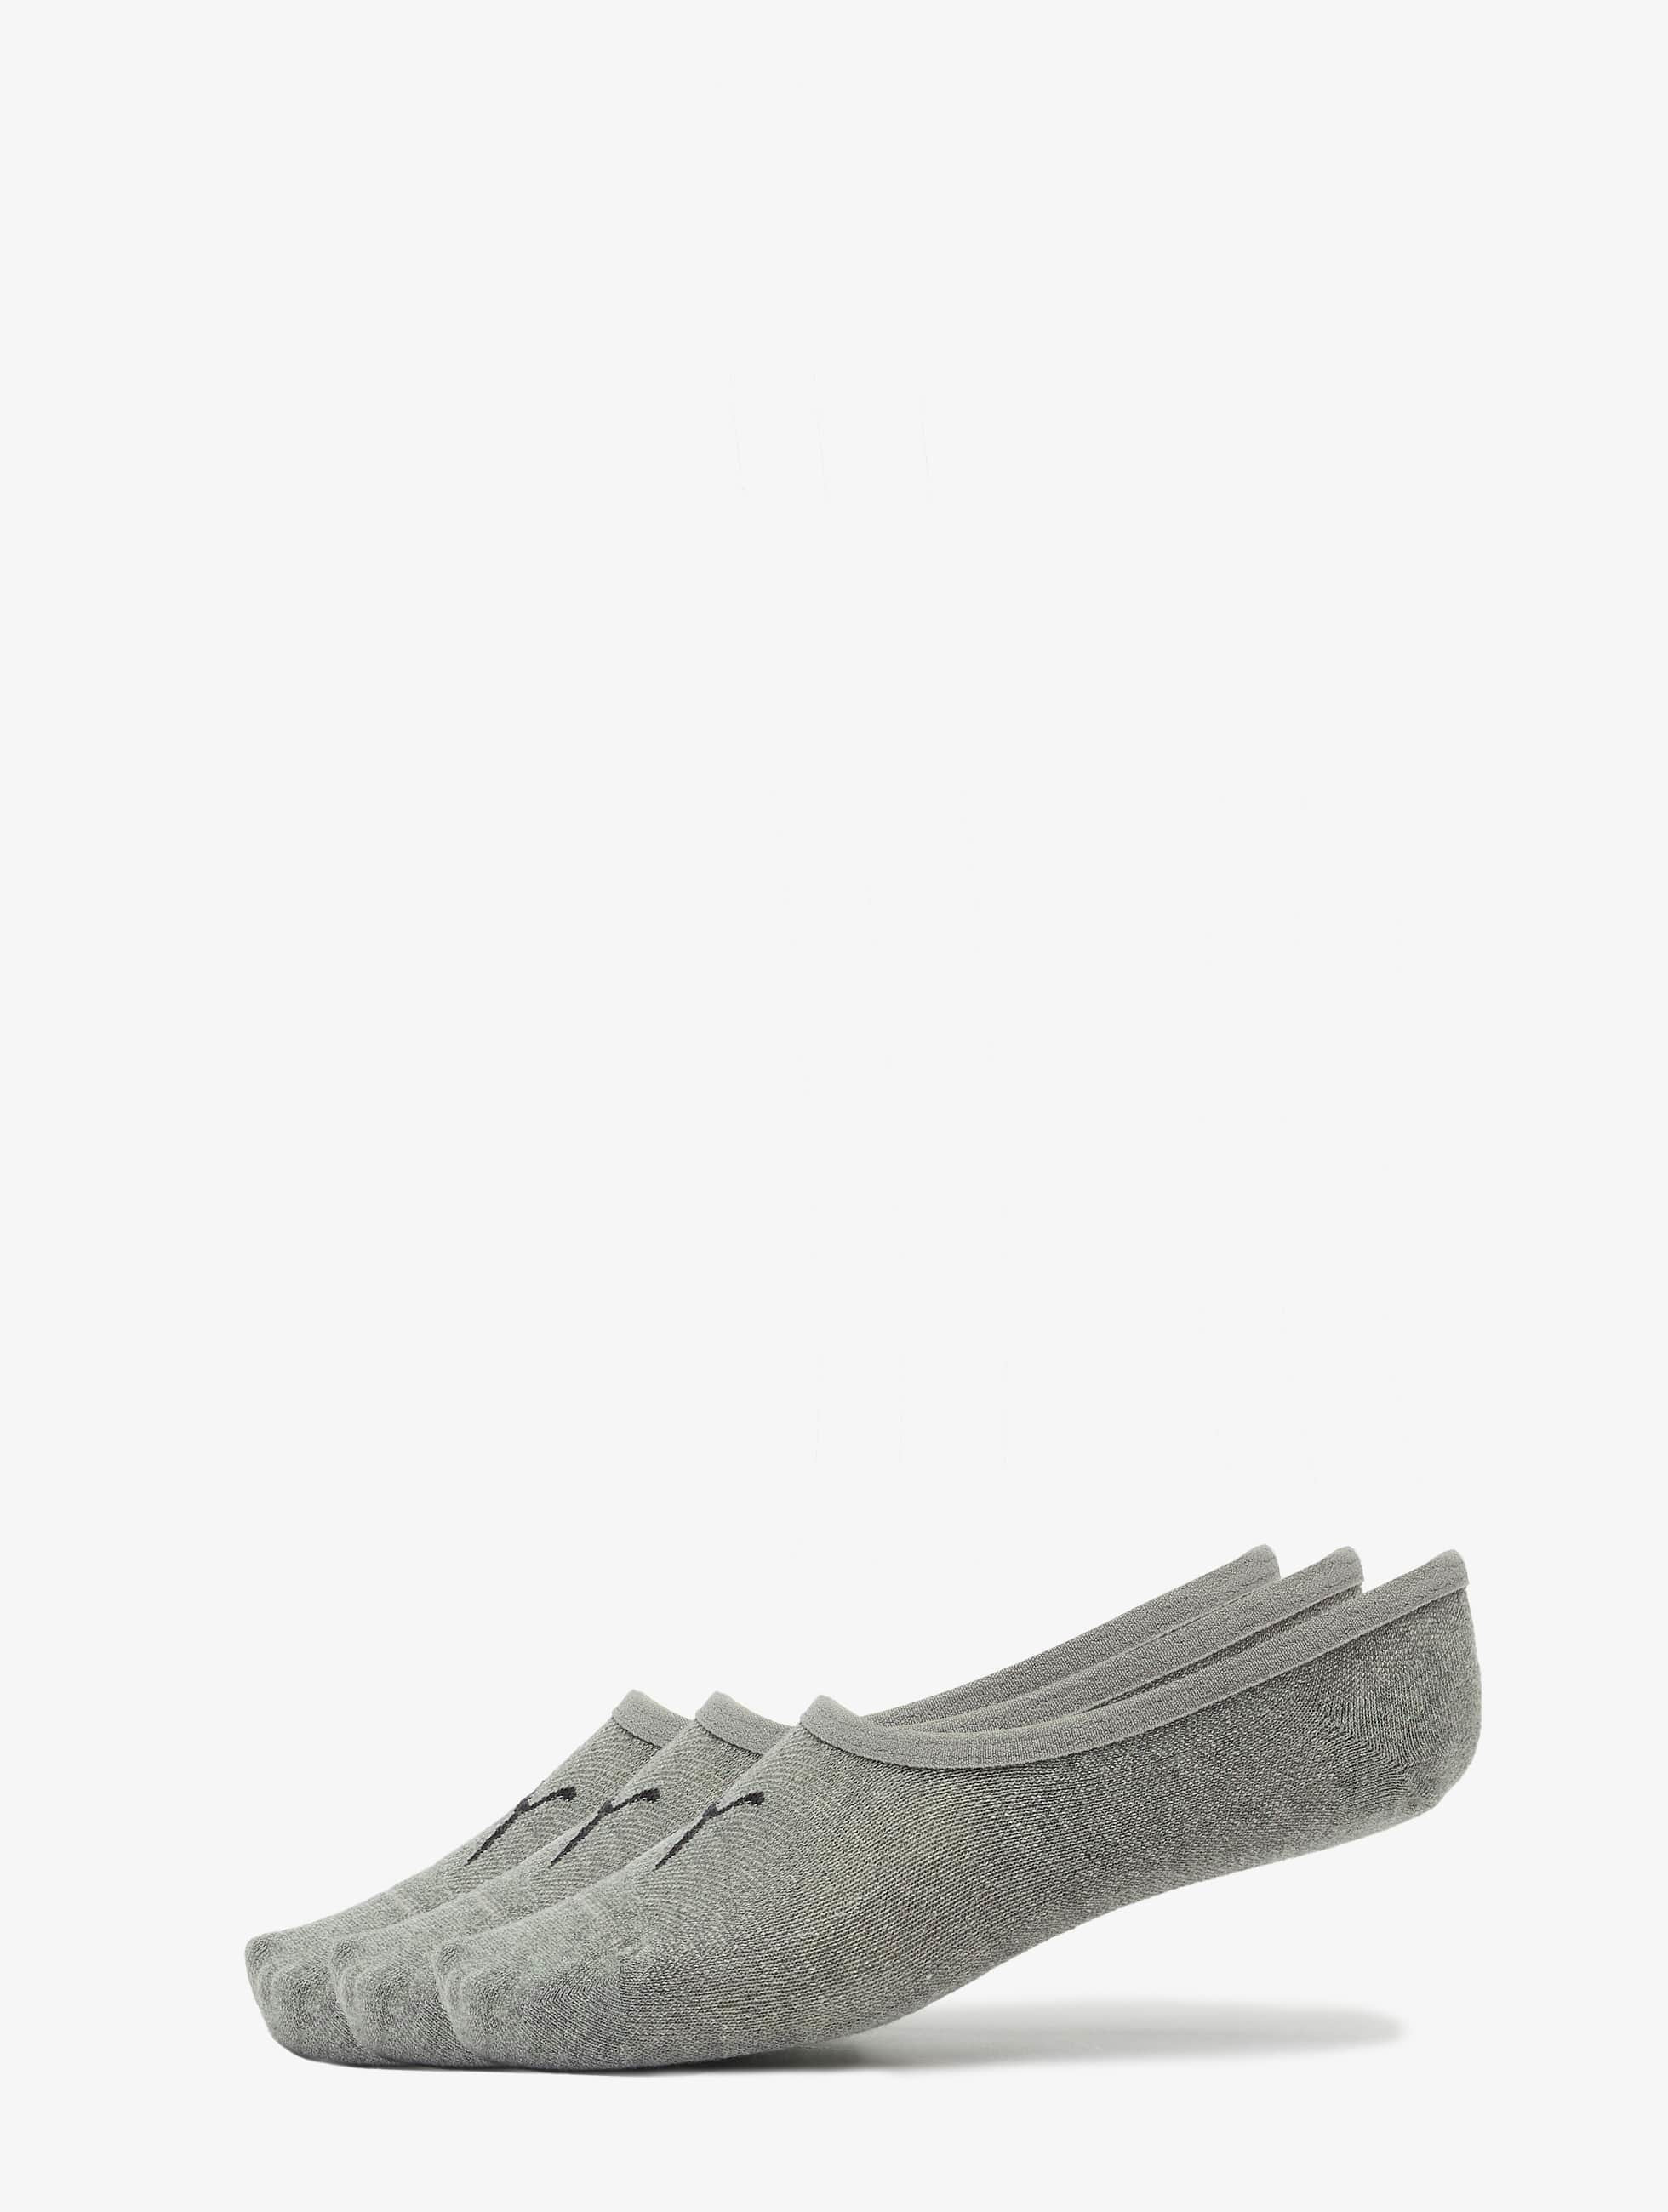 Puma Chaussettes 3-Pack Footies gris